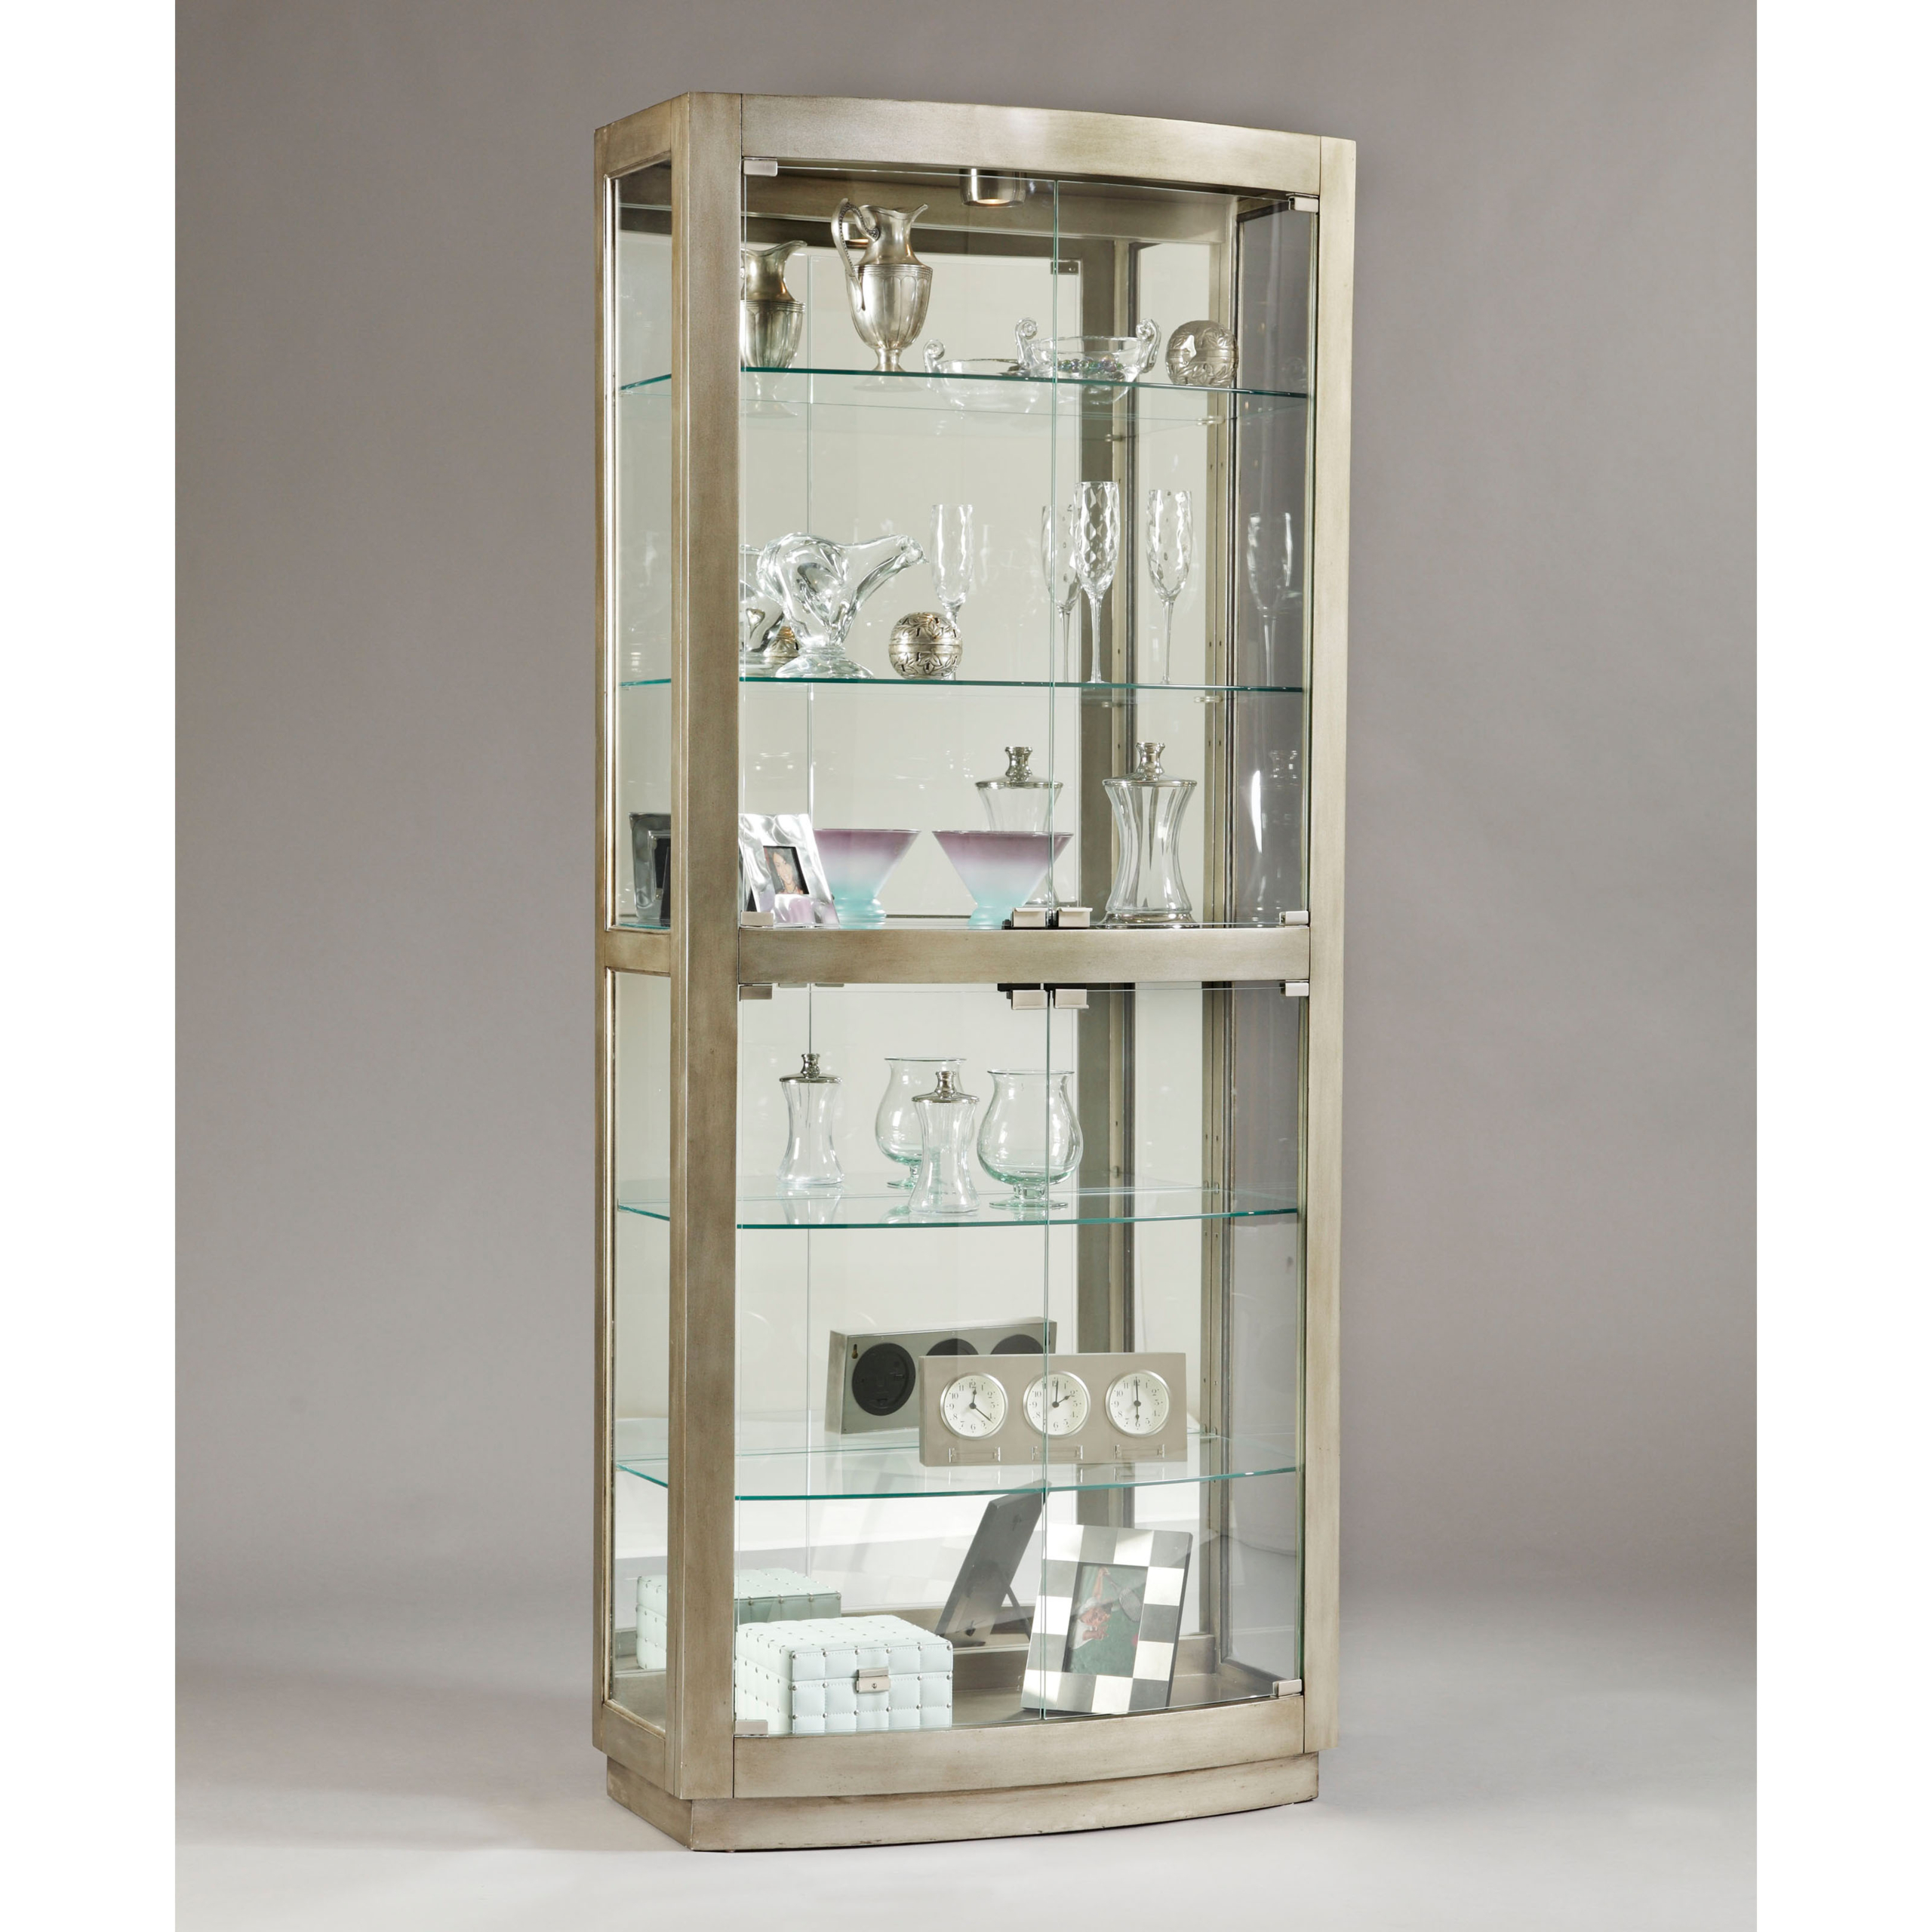 1930s Glass Display Cabinet